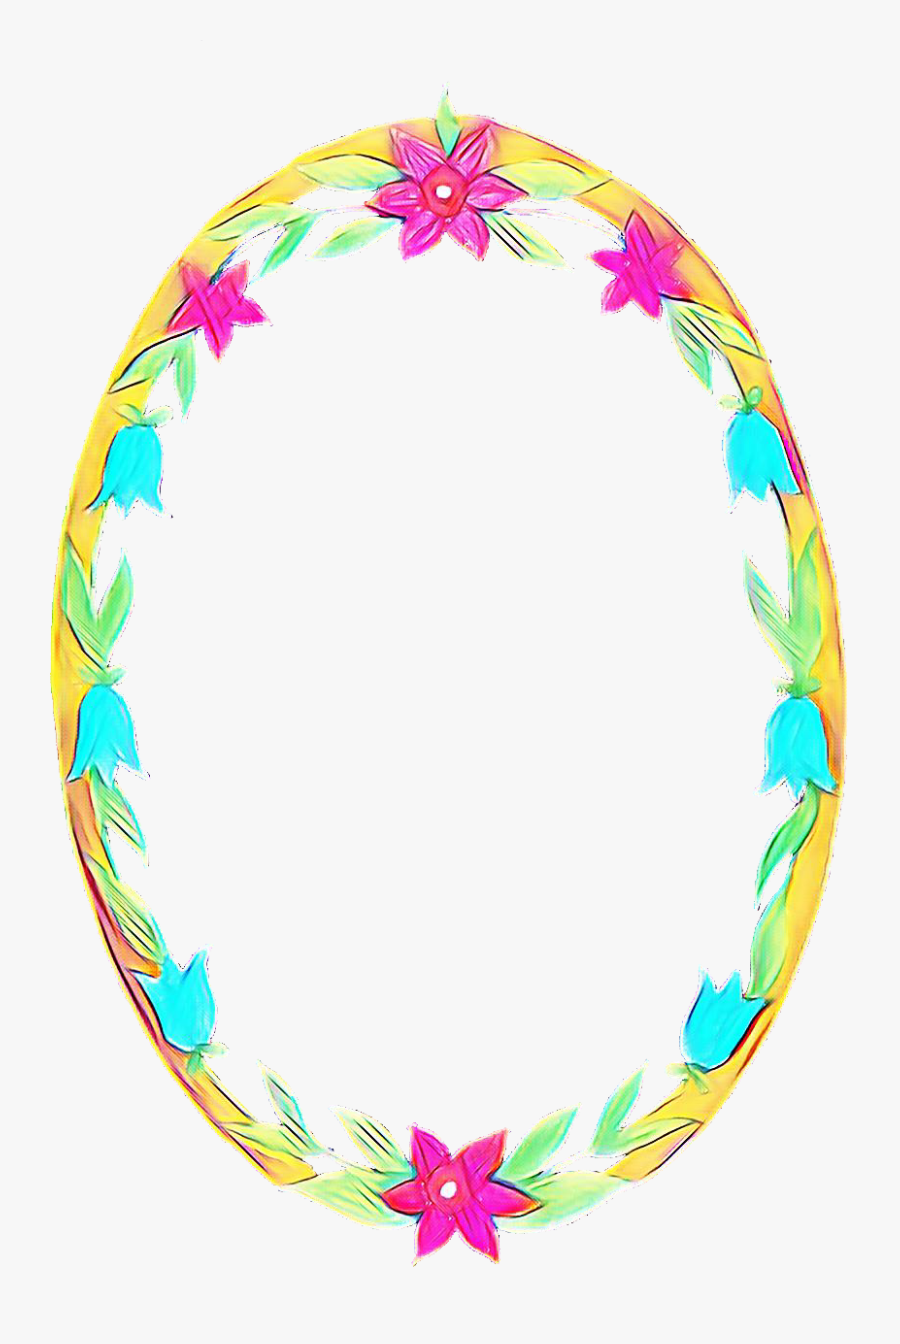 #freetoedit #easterdecor #ftestickers #easter #egg - Circle, Transparent Clipart